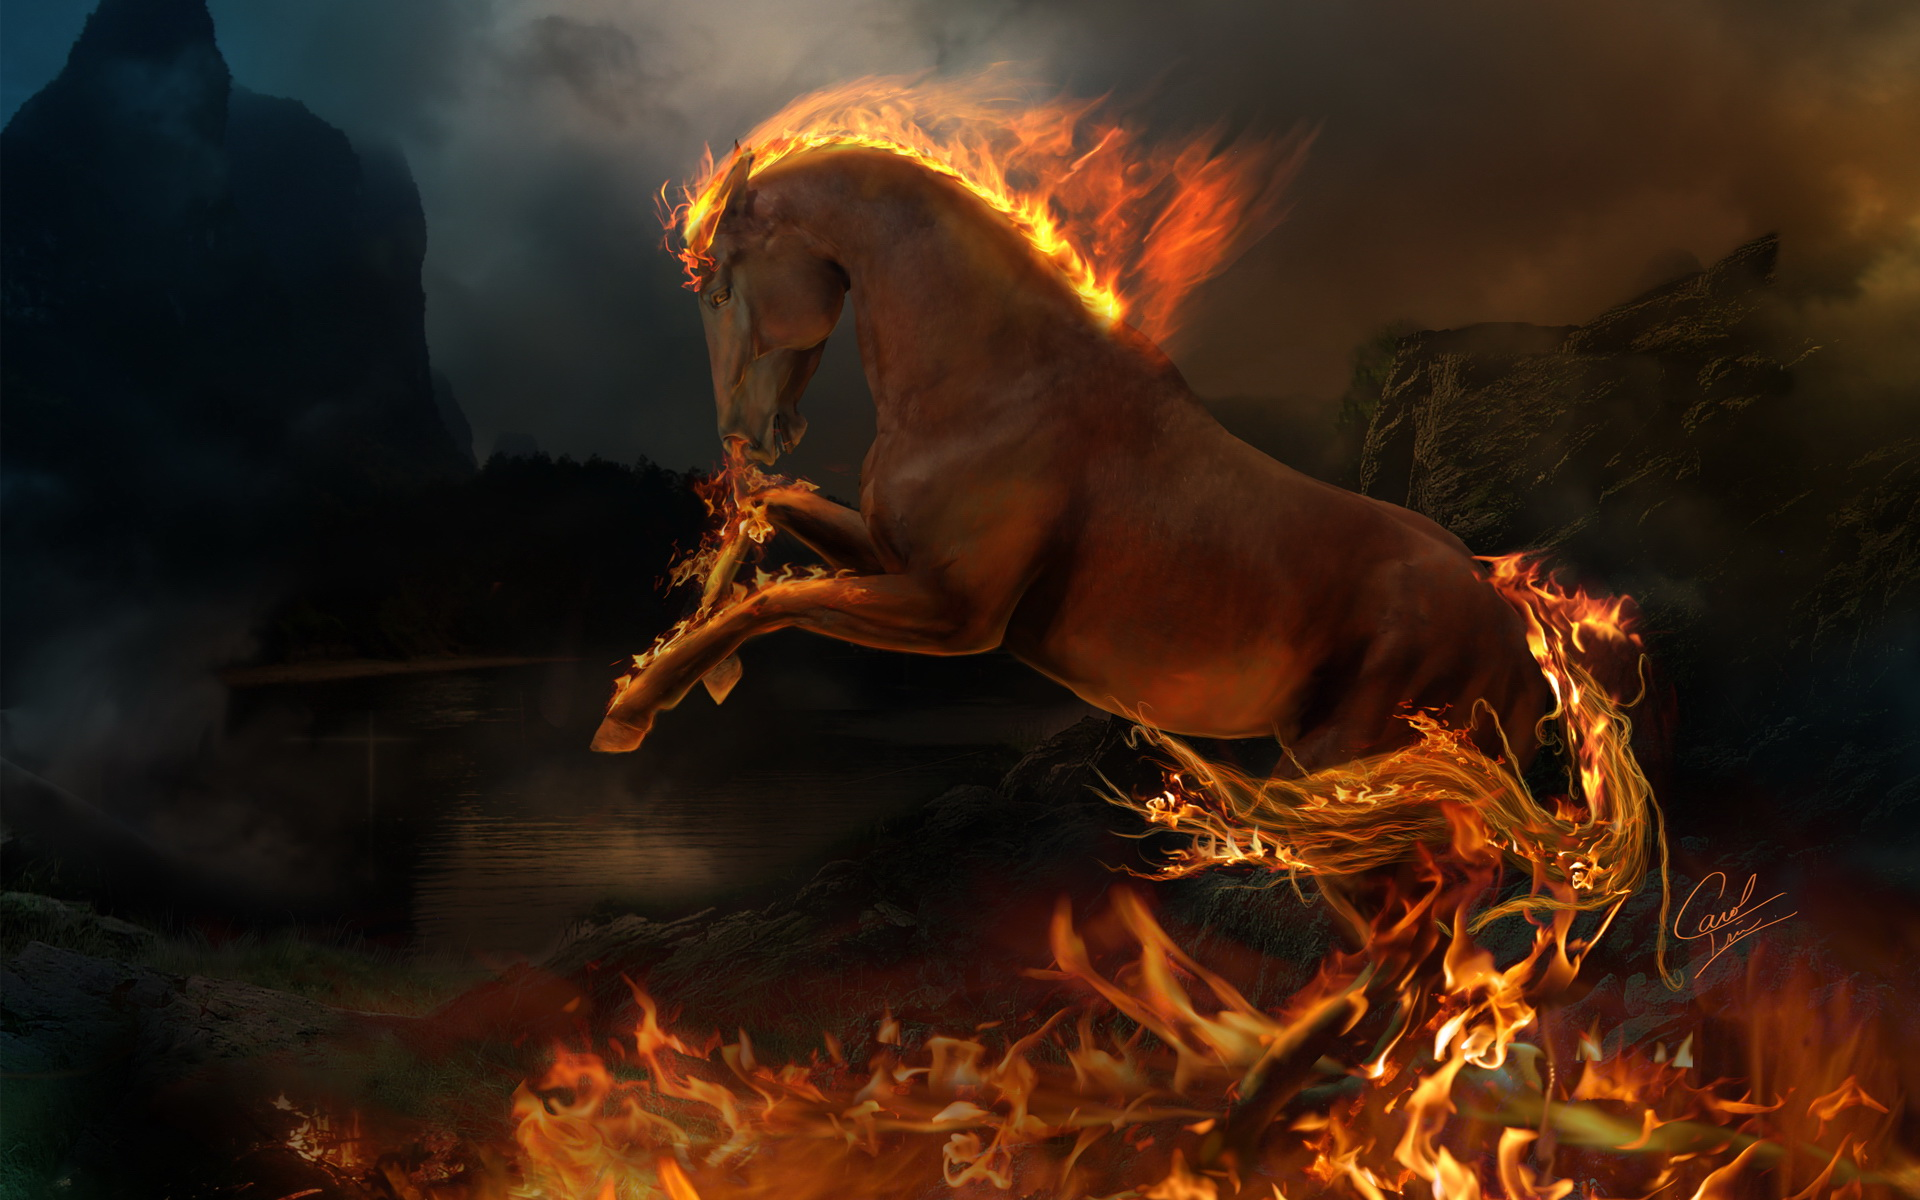 fire horse cool wallpapers desktop | Desktop Backgrounds for Free HD ...